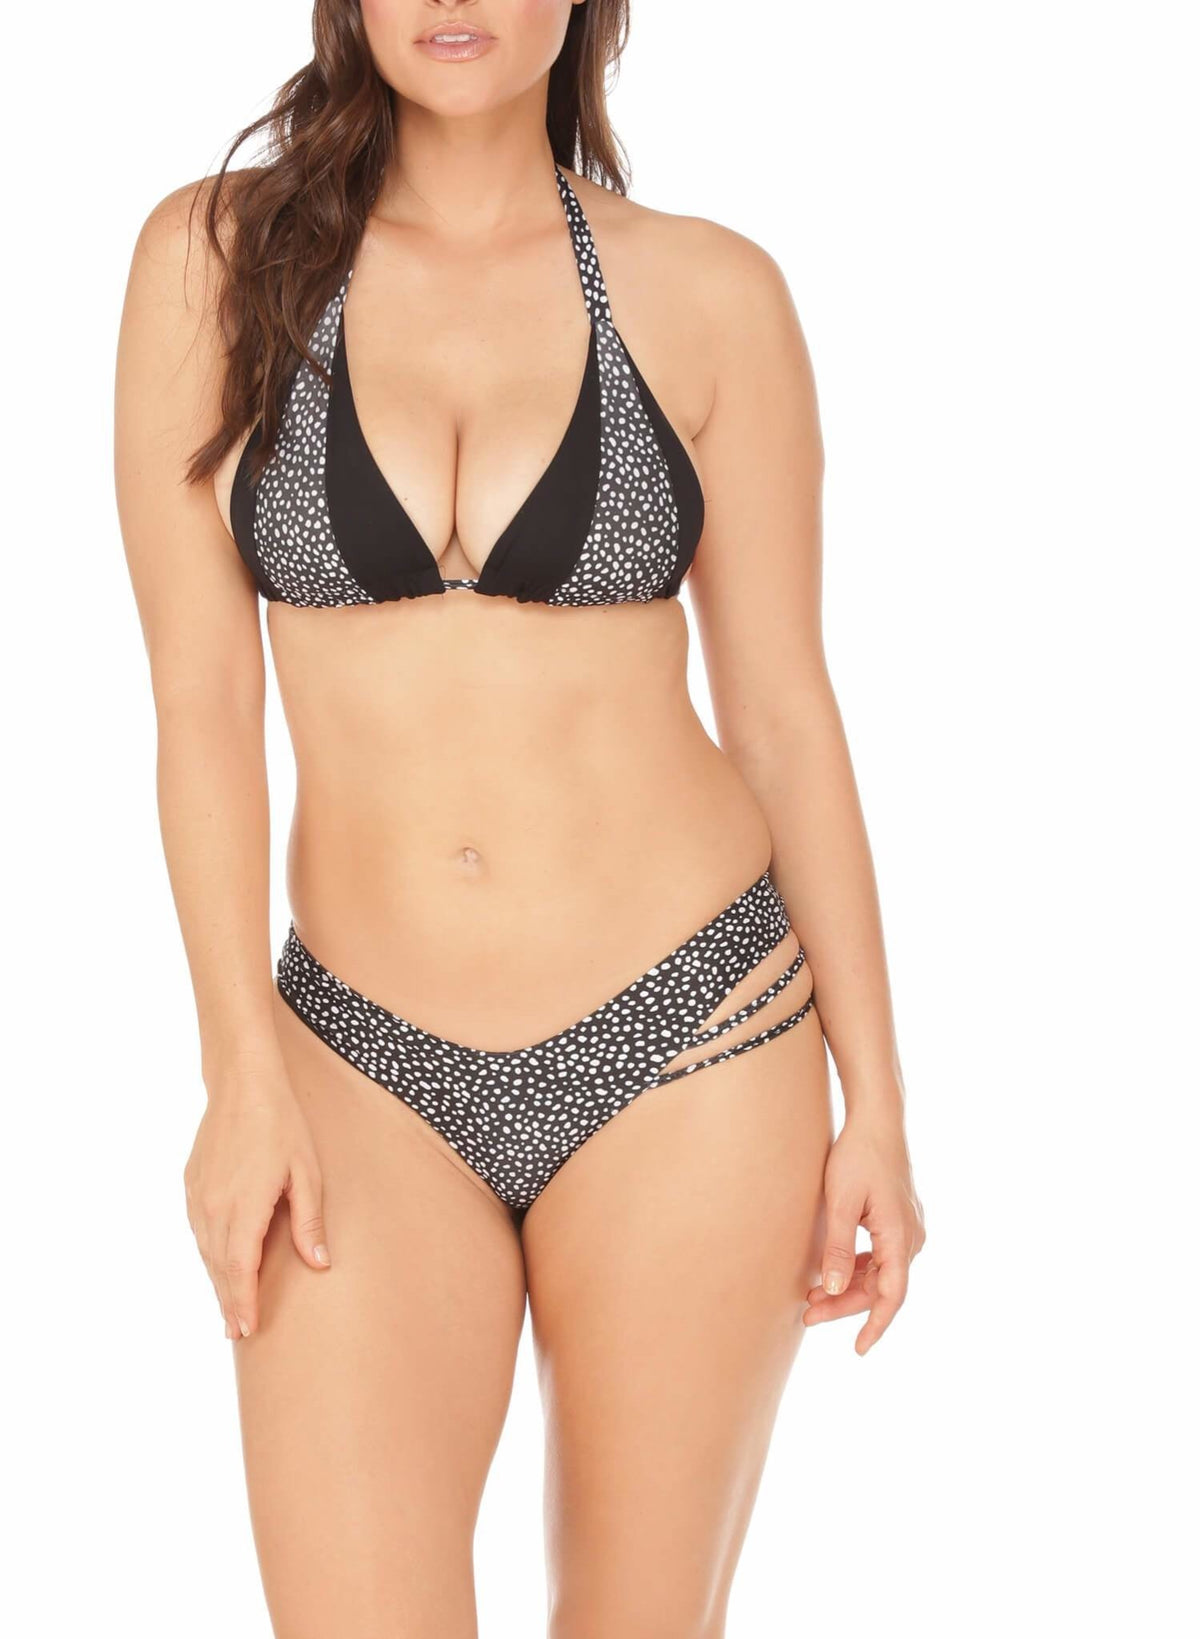 Cali High Cut Bottoms - Cheeky - Polka Dots